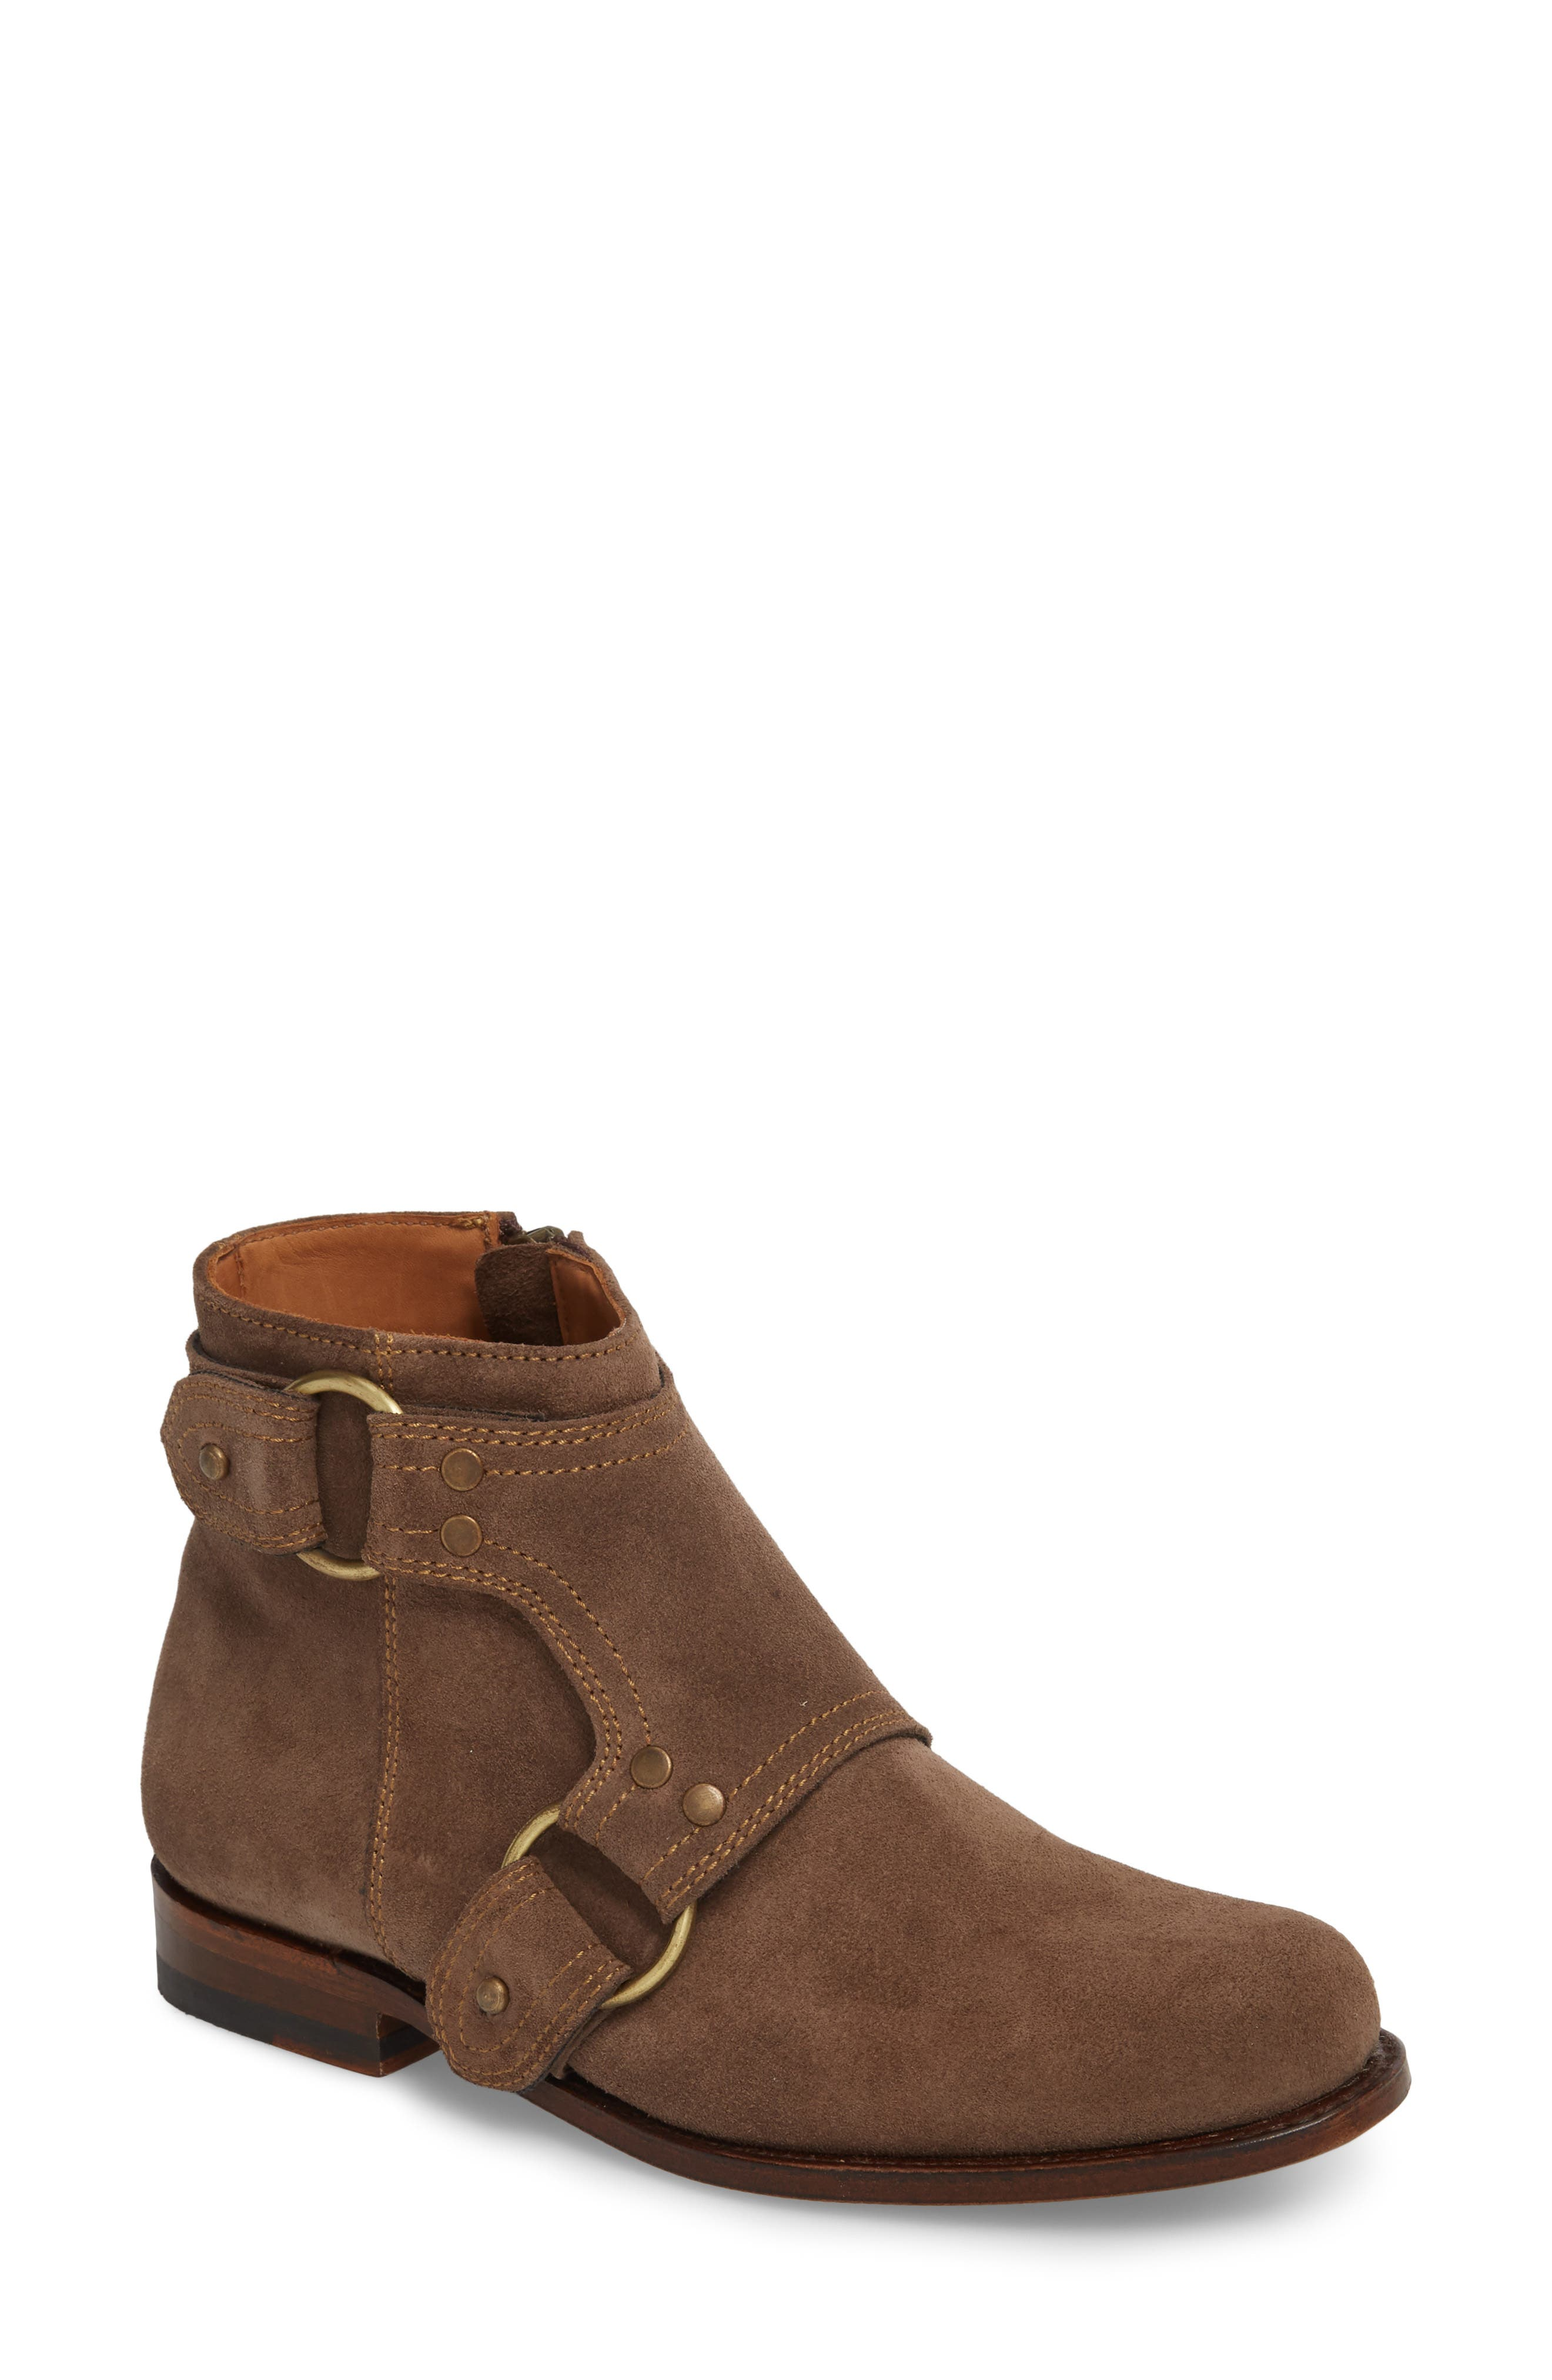 Two24 by Ariat Paloma Bootie,                             Main thumbnail 1, color,